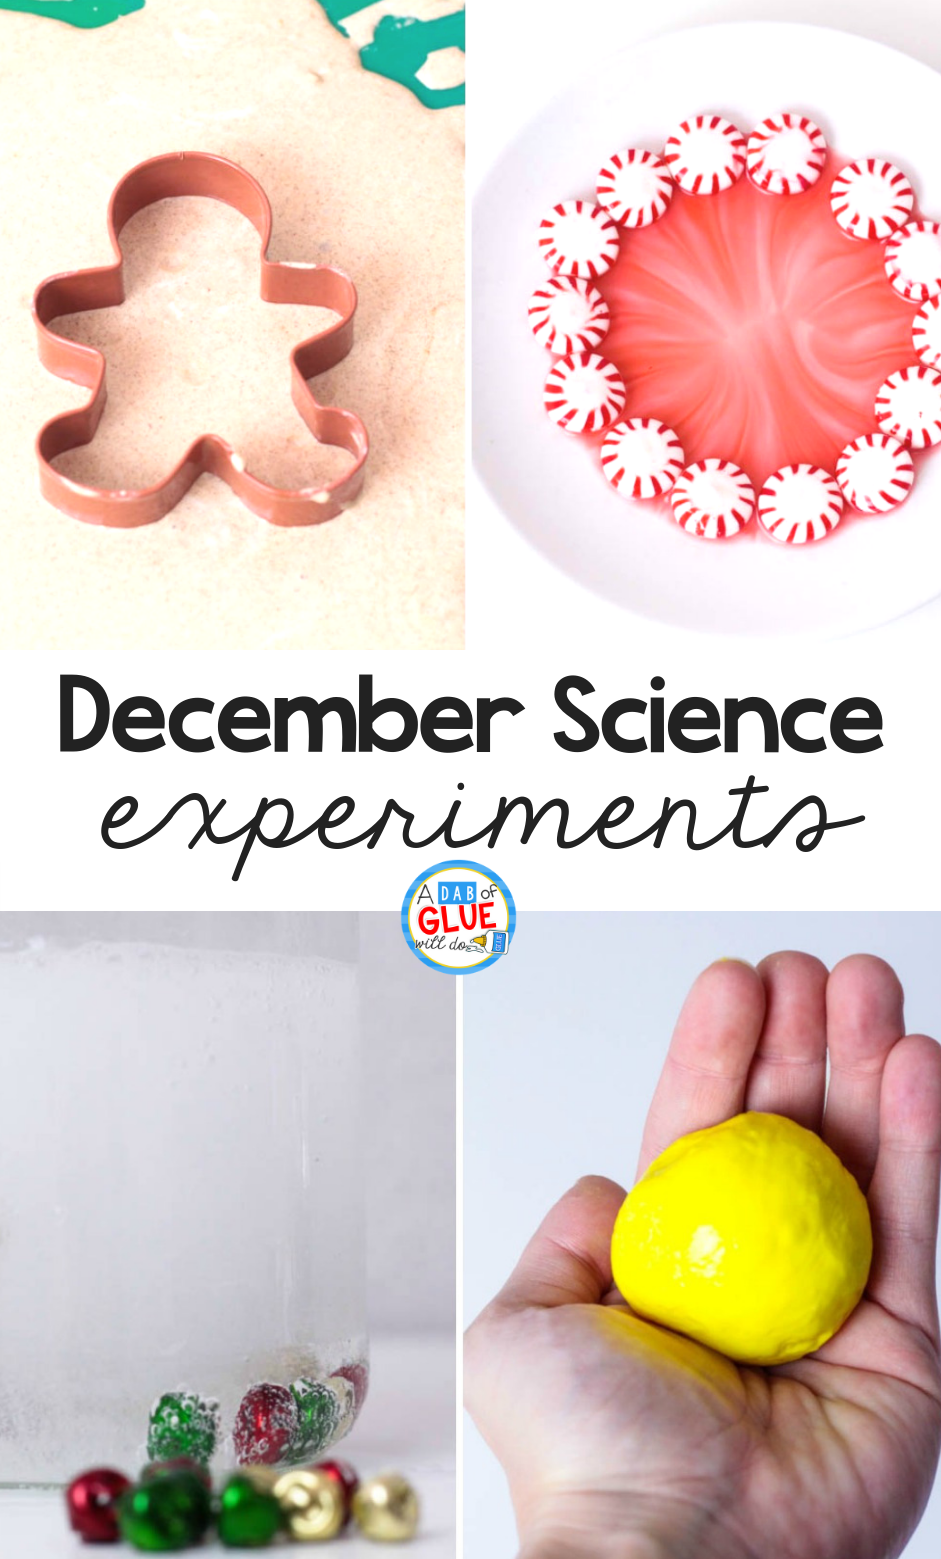 December Science Experiments are a fascinating way for students to connect hands-on science experiments with the winter season.